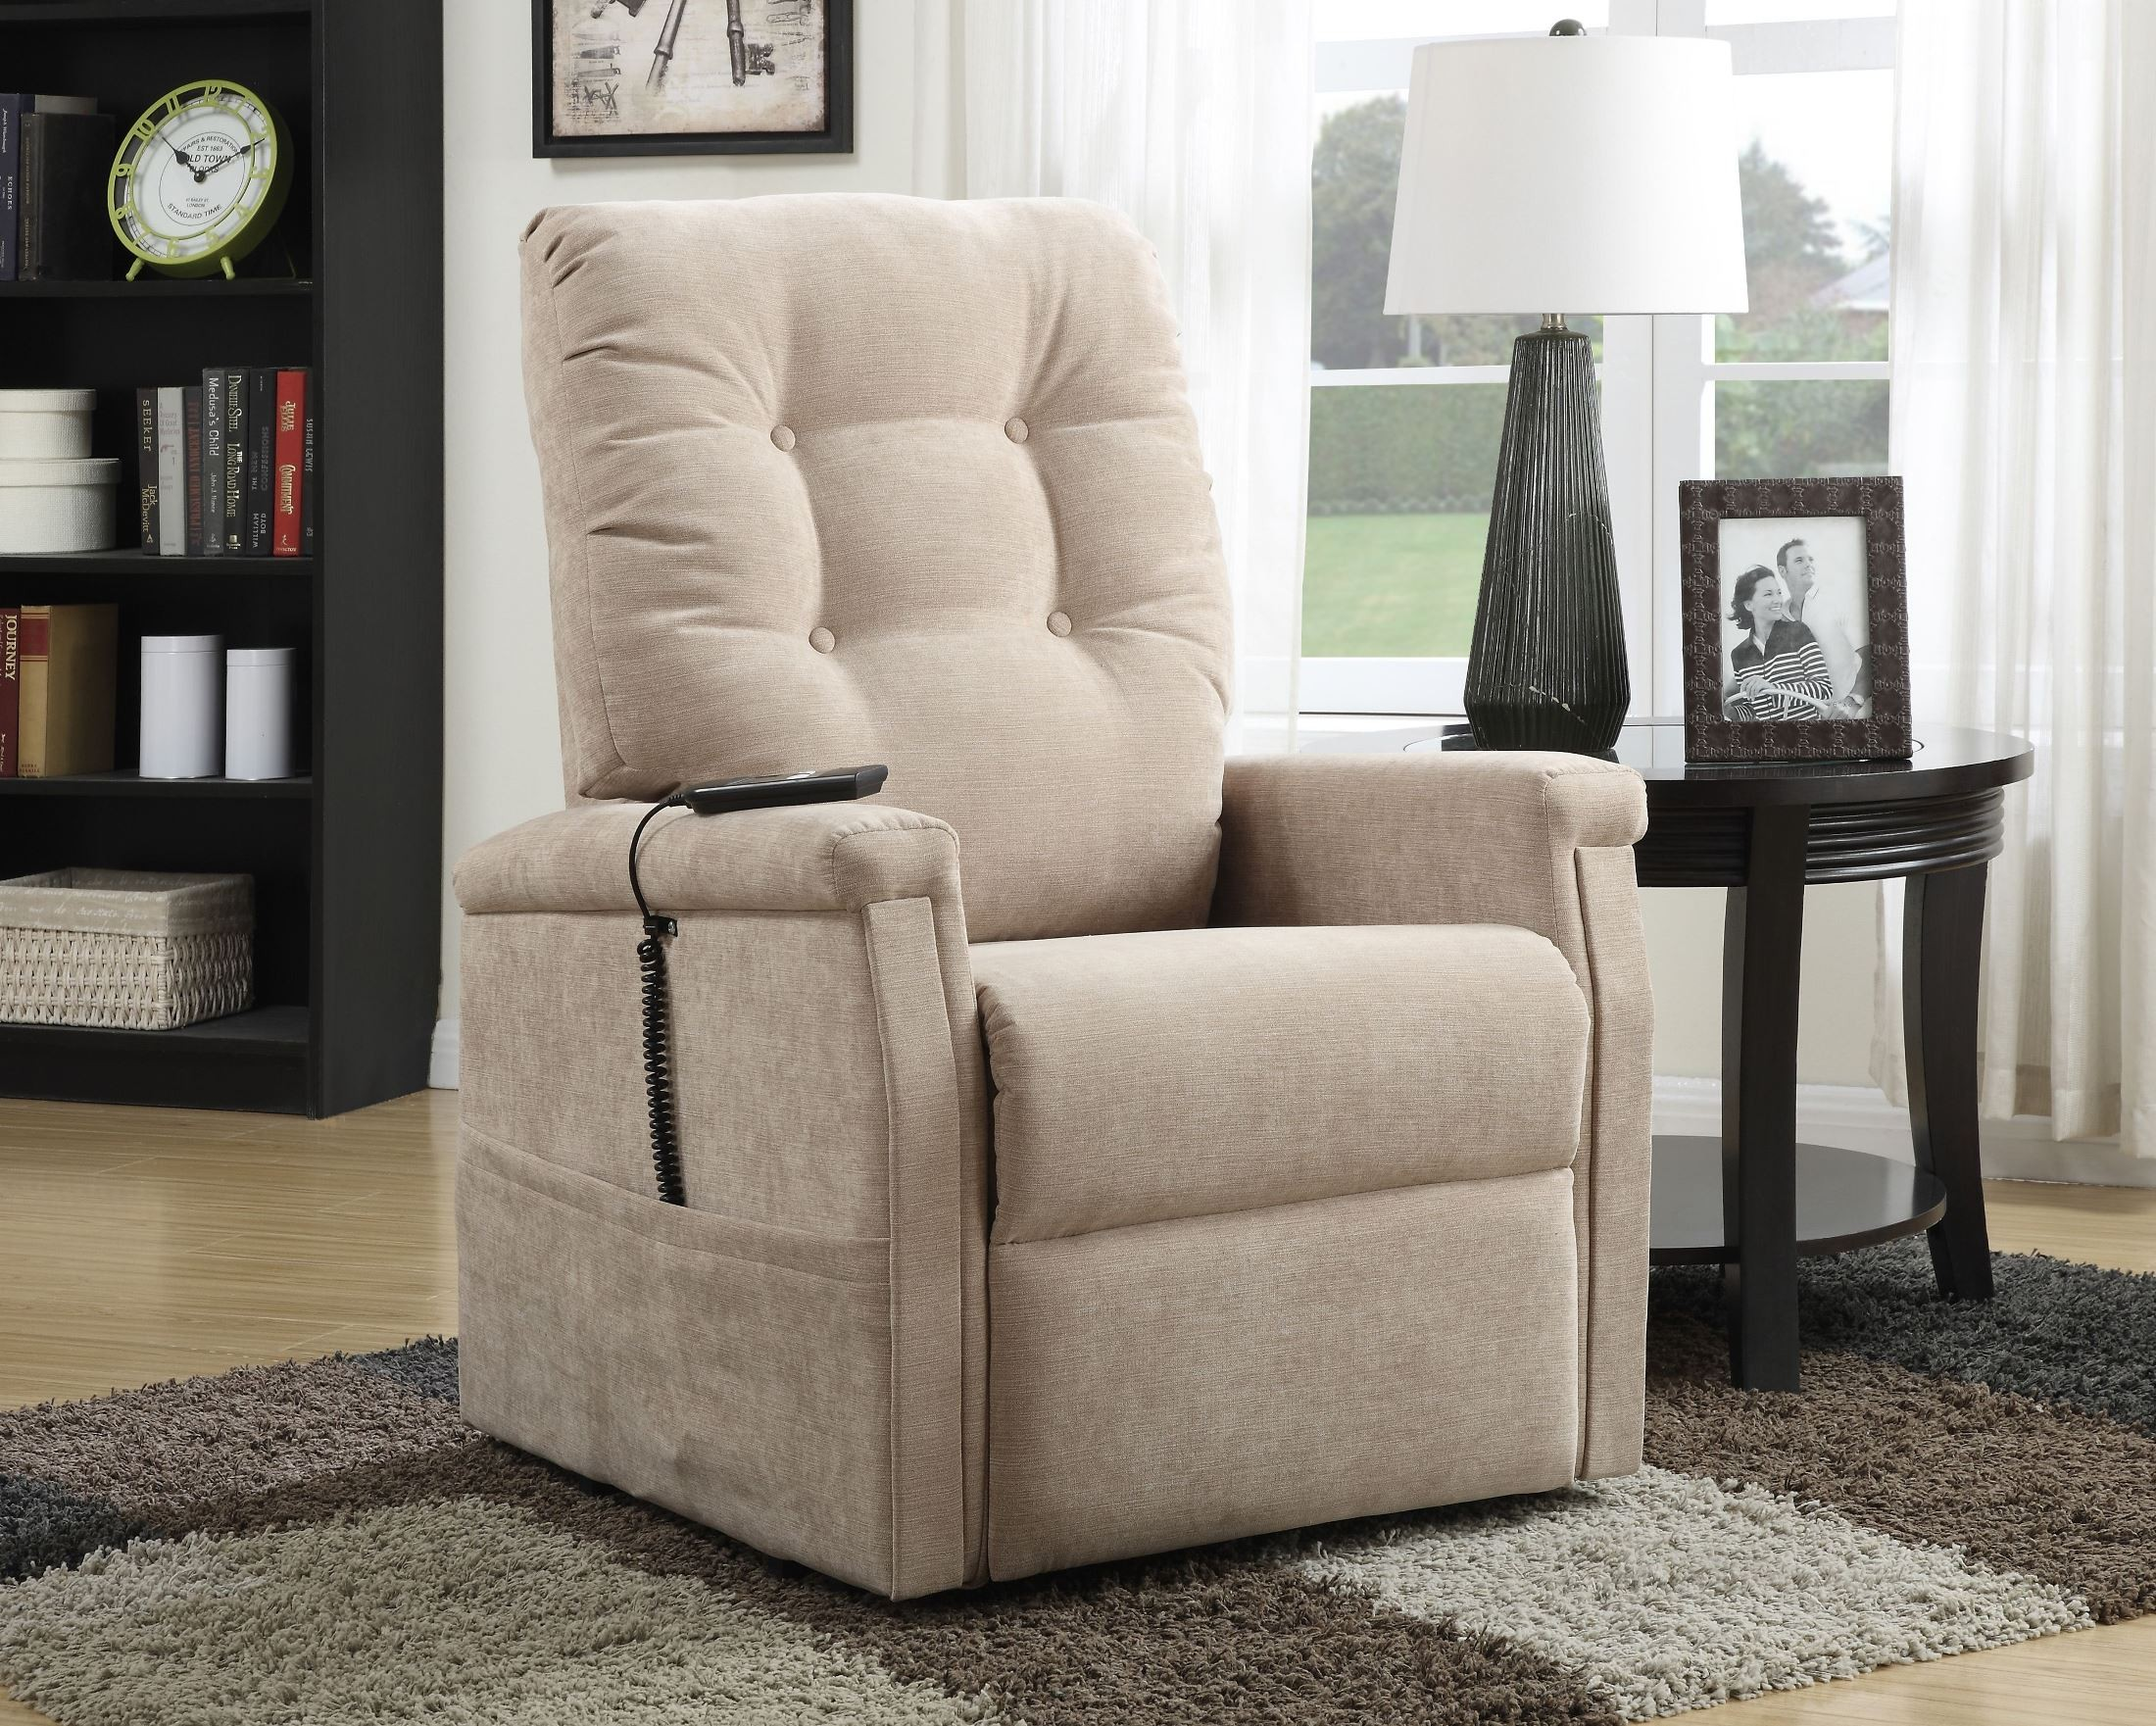 Montreal Piedra Fabric Lift Chair from Pulaski DS 1667 016 050